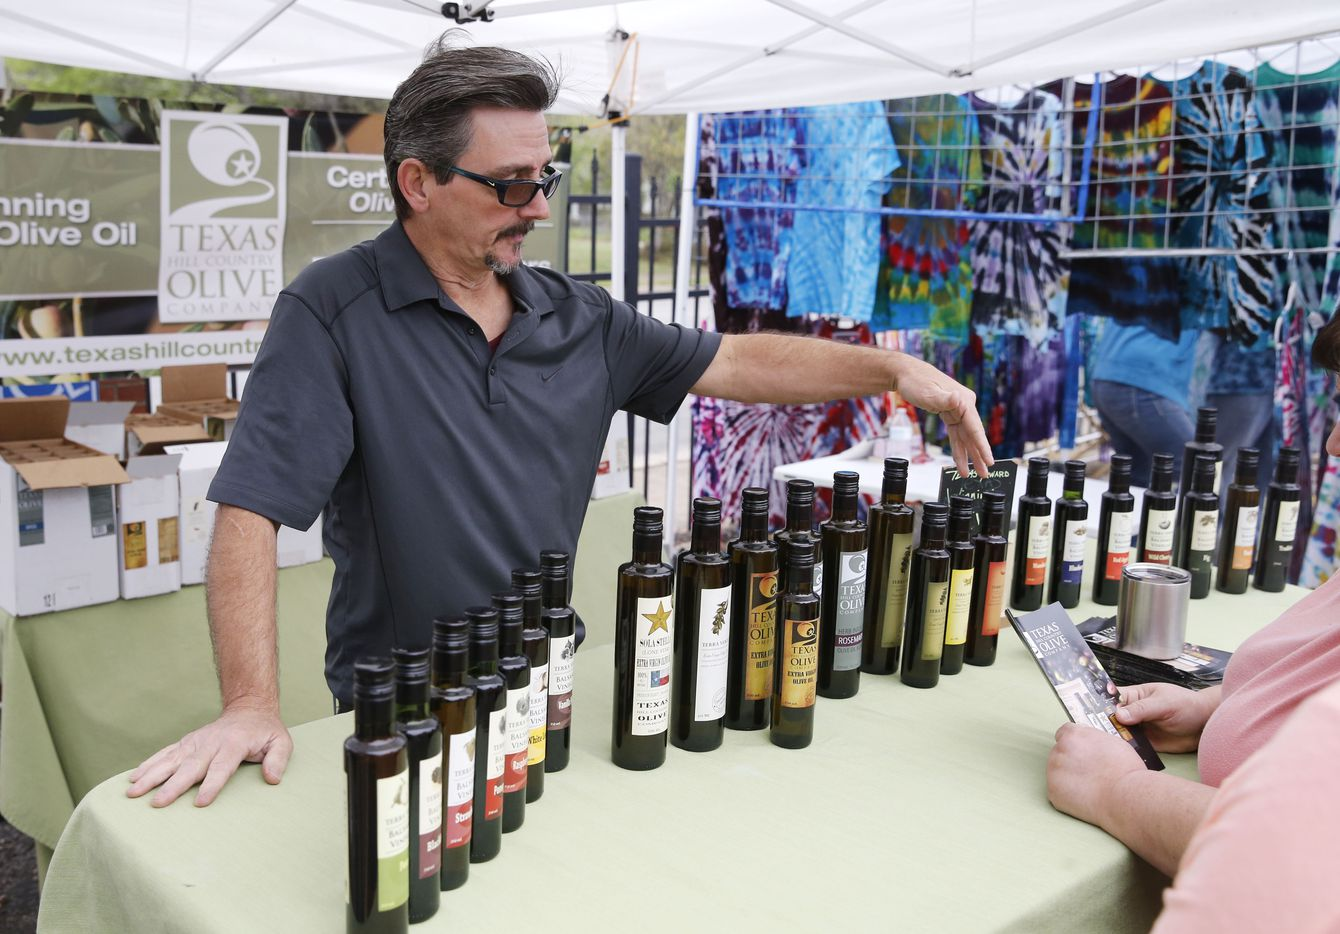 Texas Hill Country Olive Company's Byron Swindle explains the different products they offers a variety of products during opening day for the Tyler Street Market run by Good Local in Dallas on Saturday, March 18, 2017.